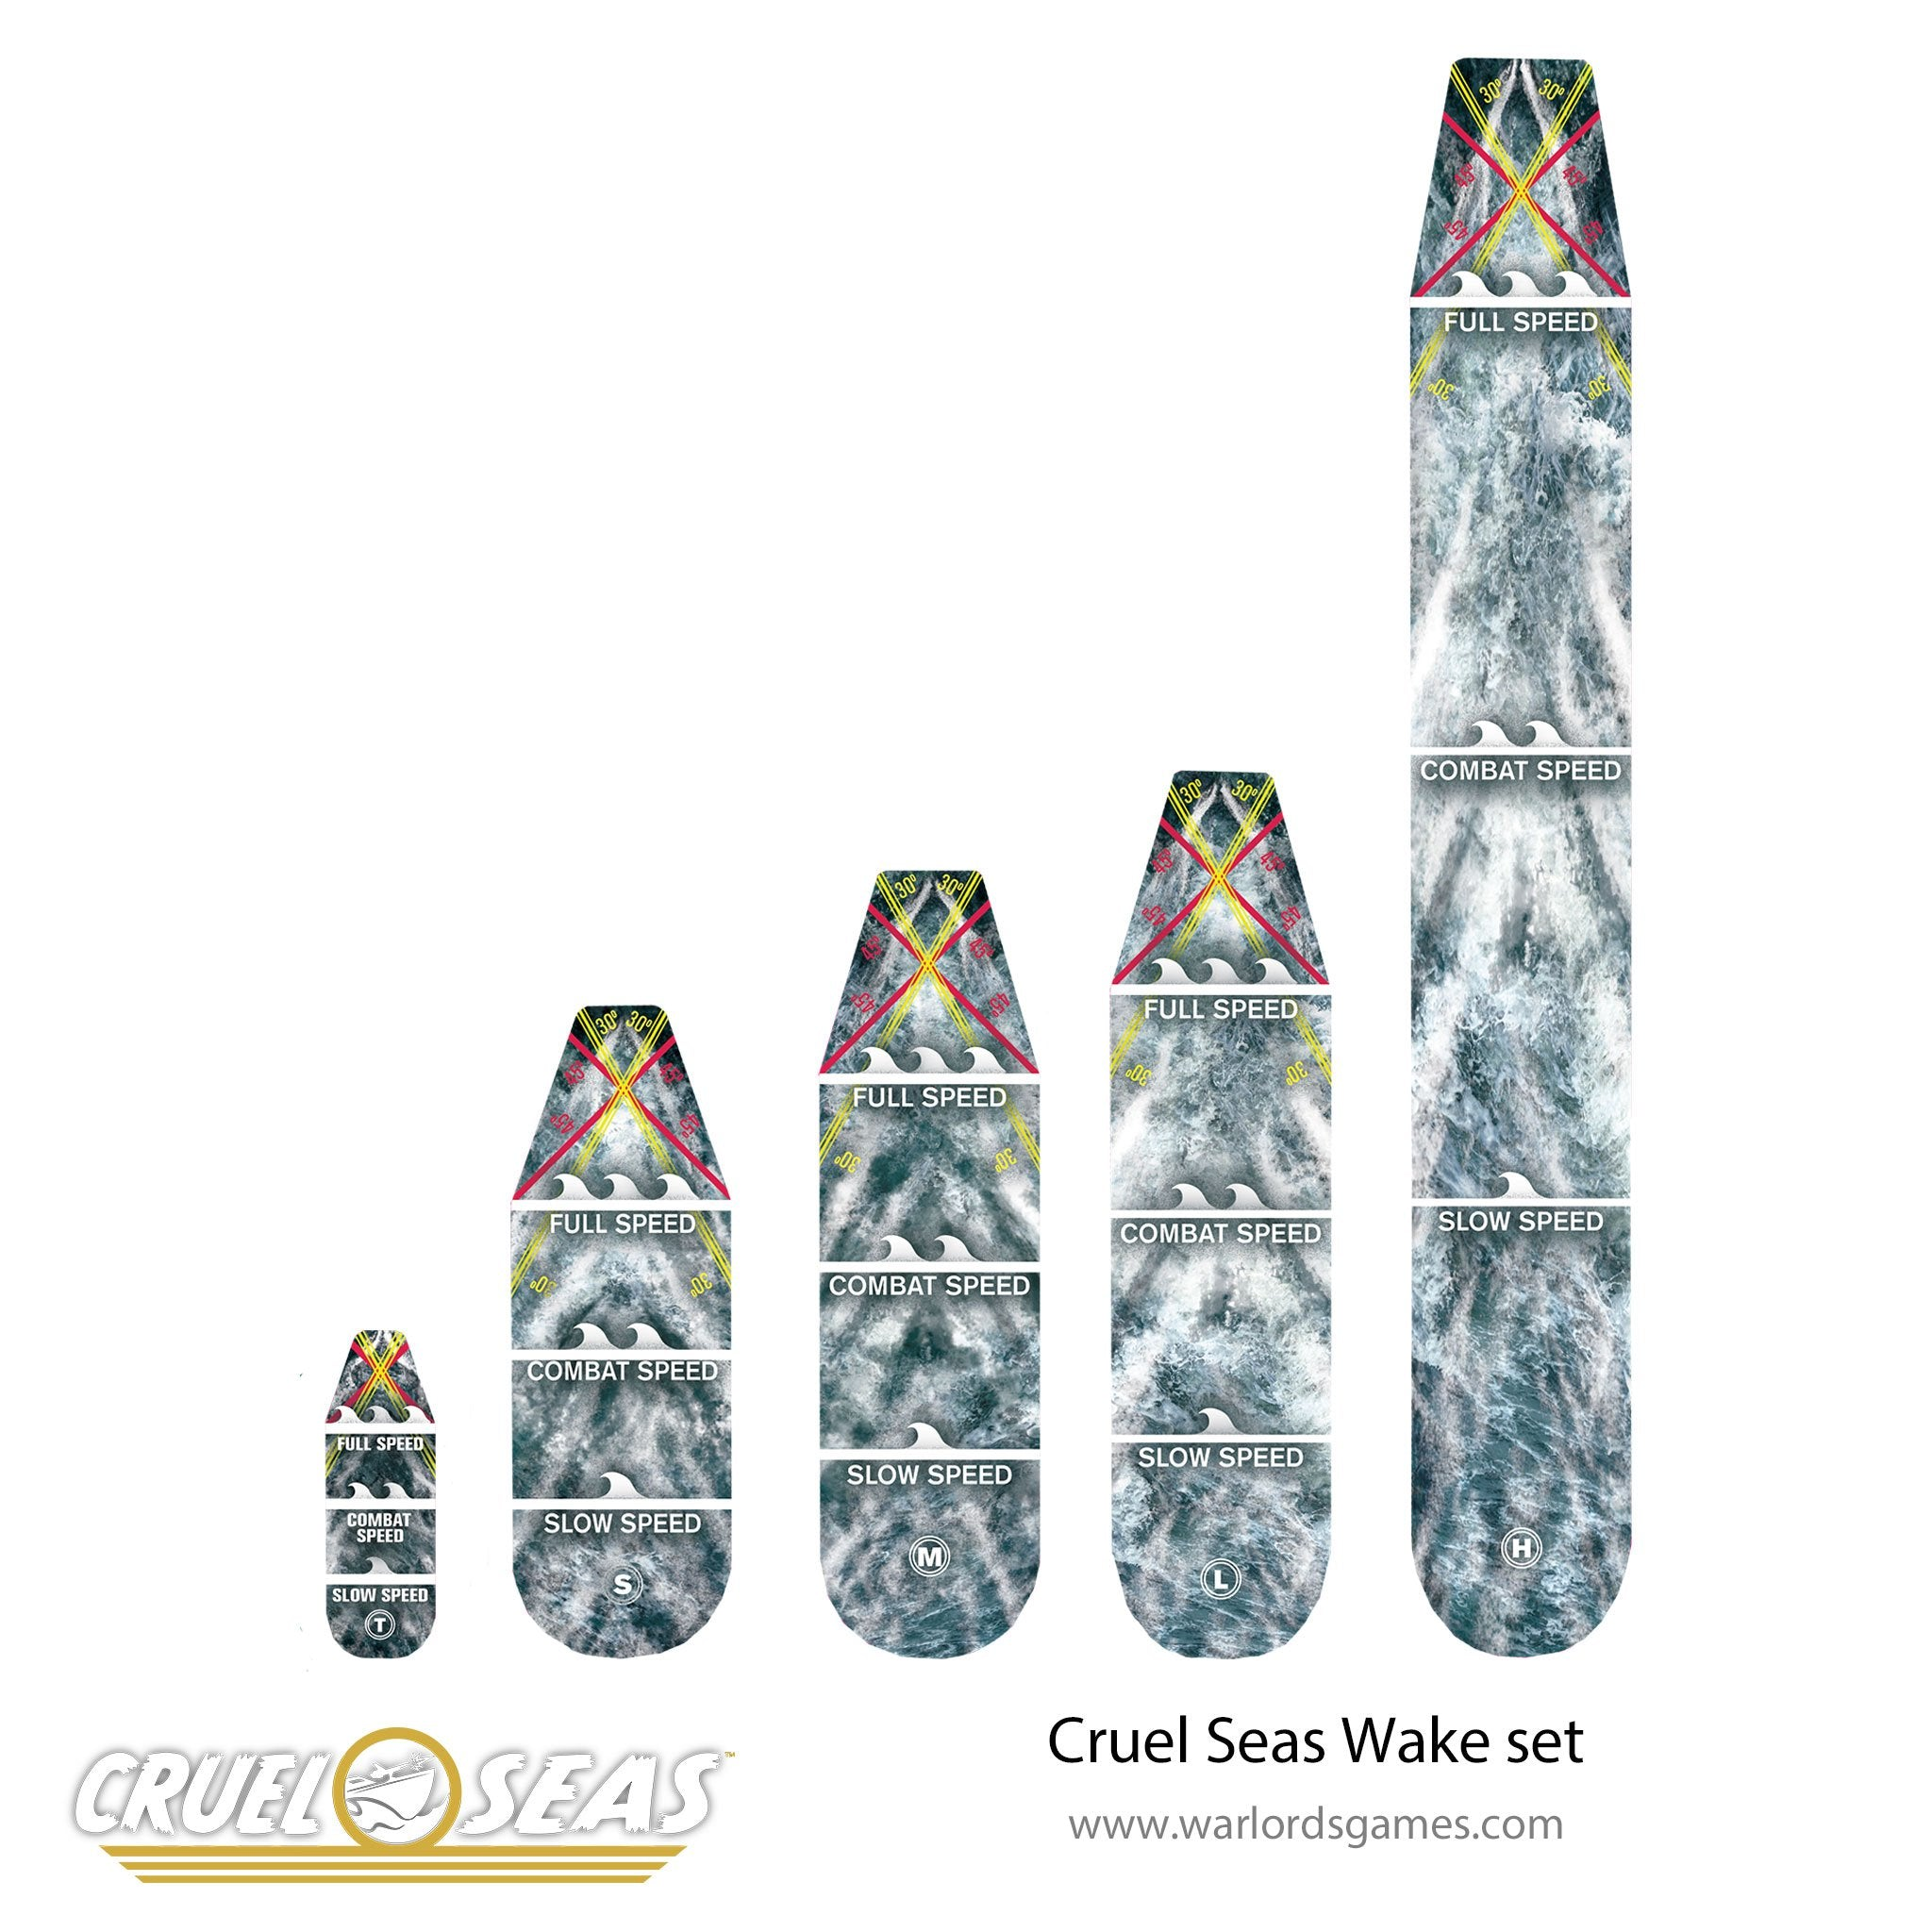 Cruel Seas Wake set